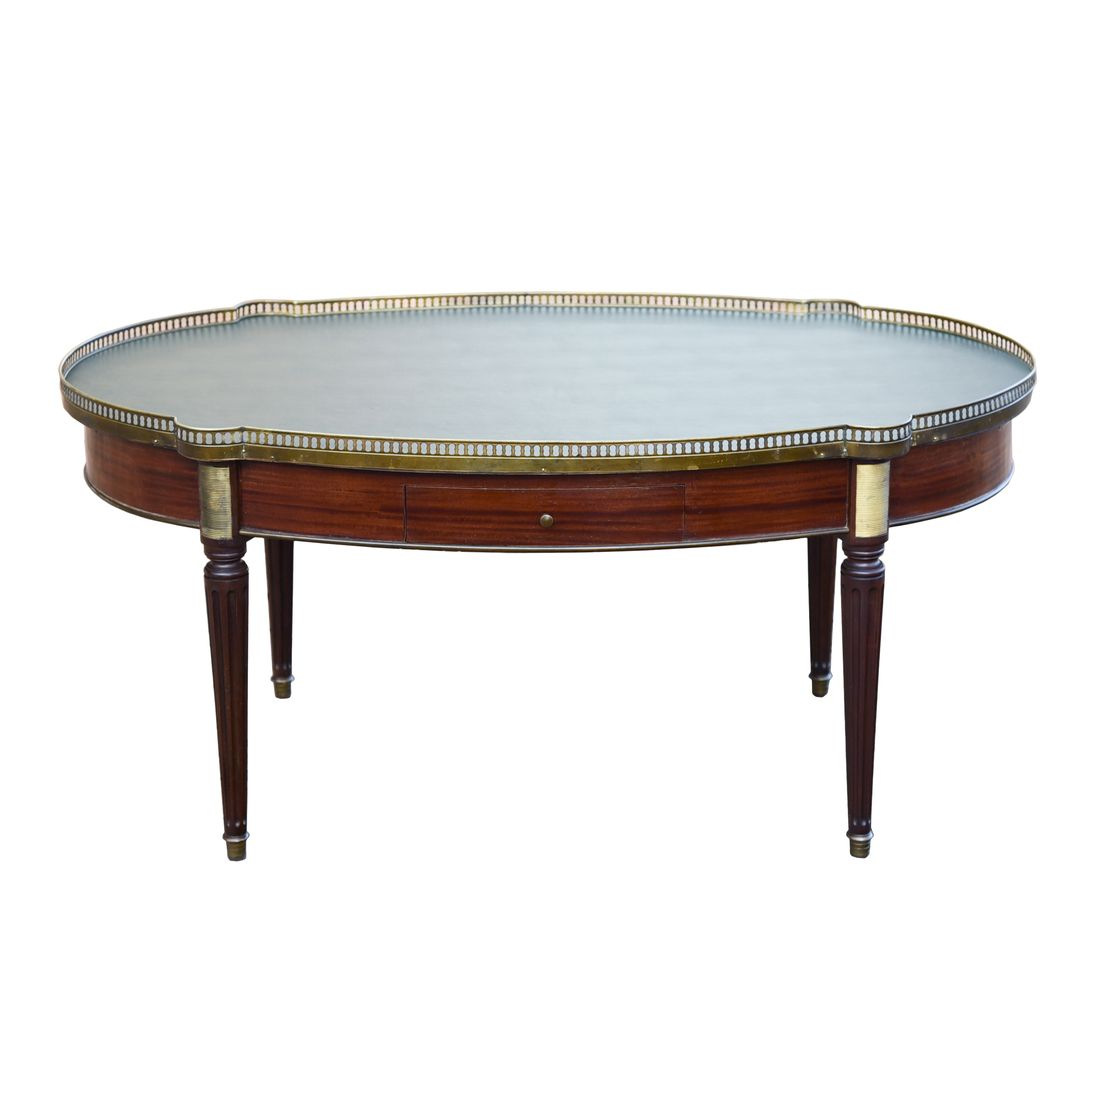 Details About Stunning French Louis Xvi Style Oval Leather Top Mahogany Tail Coffee Table